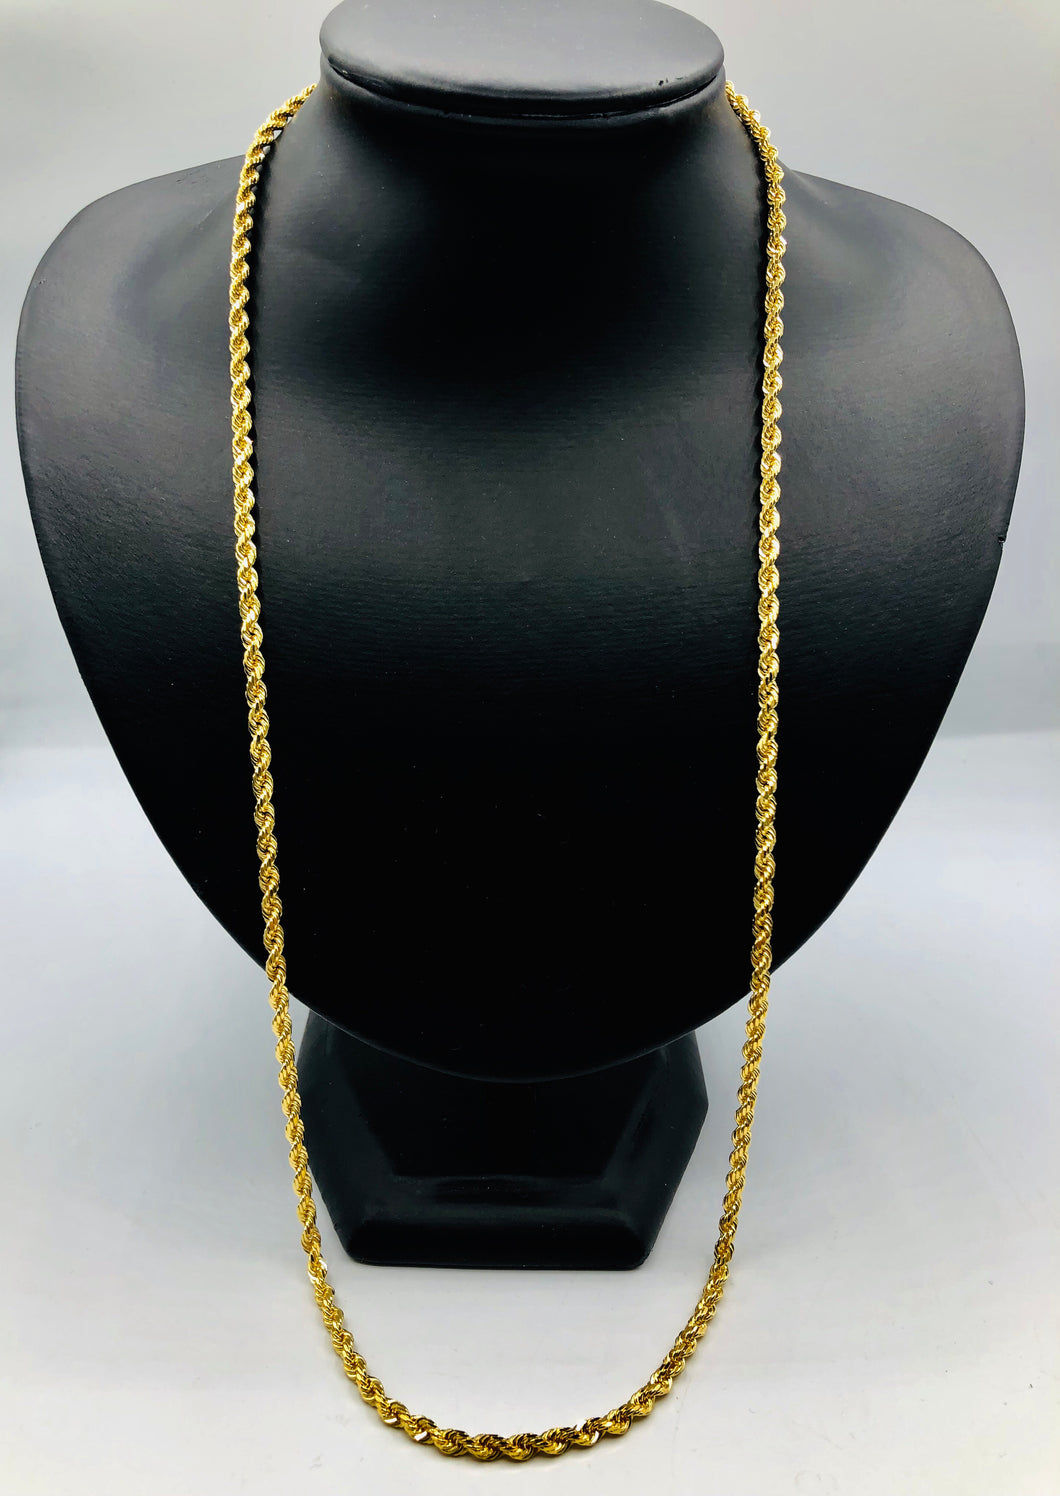 10kt Yellow Gold Rope Chain